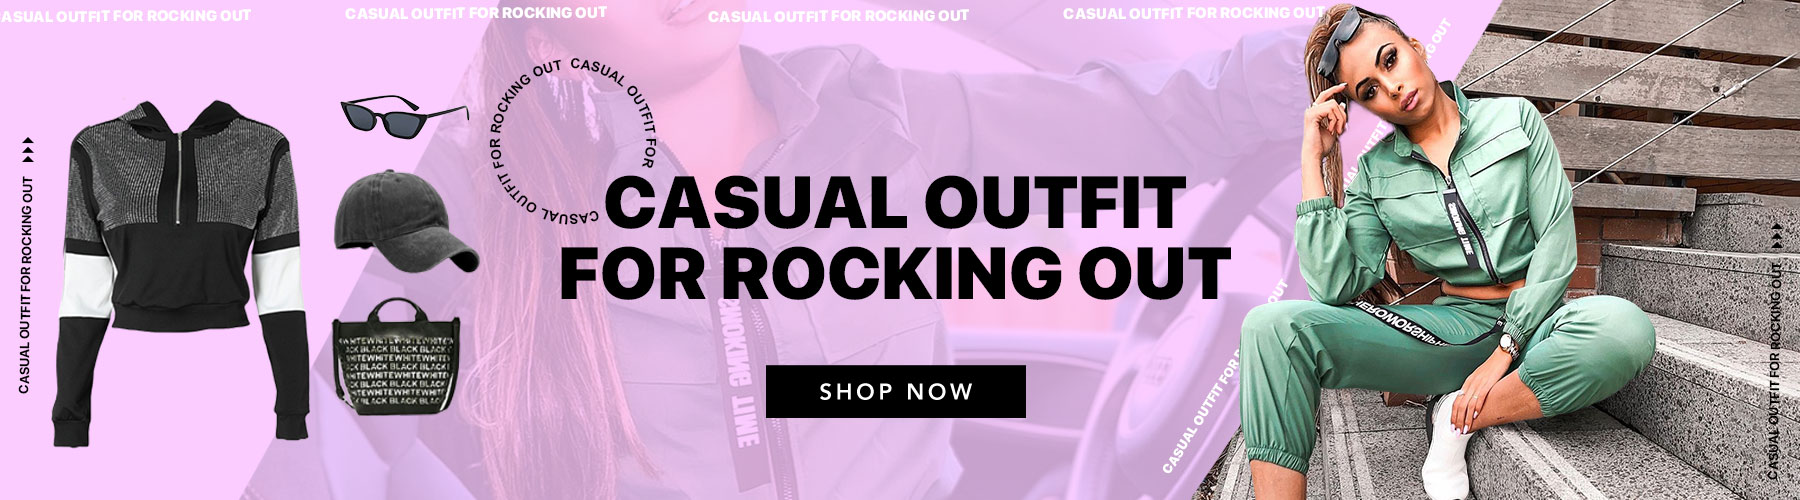 Casual Outfit For Rocking Out